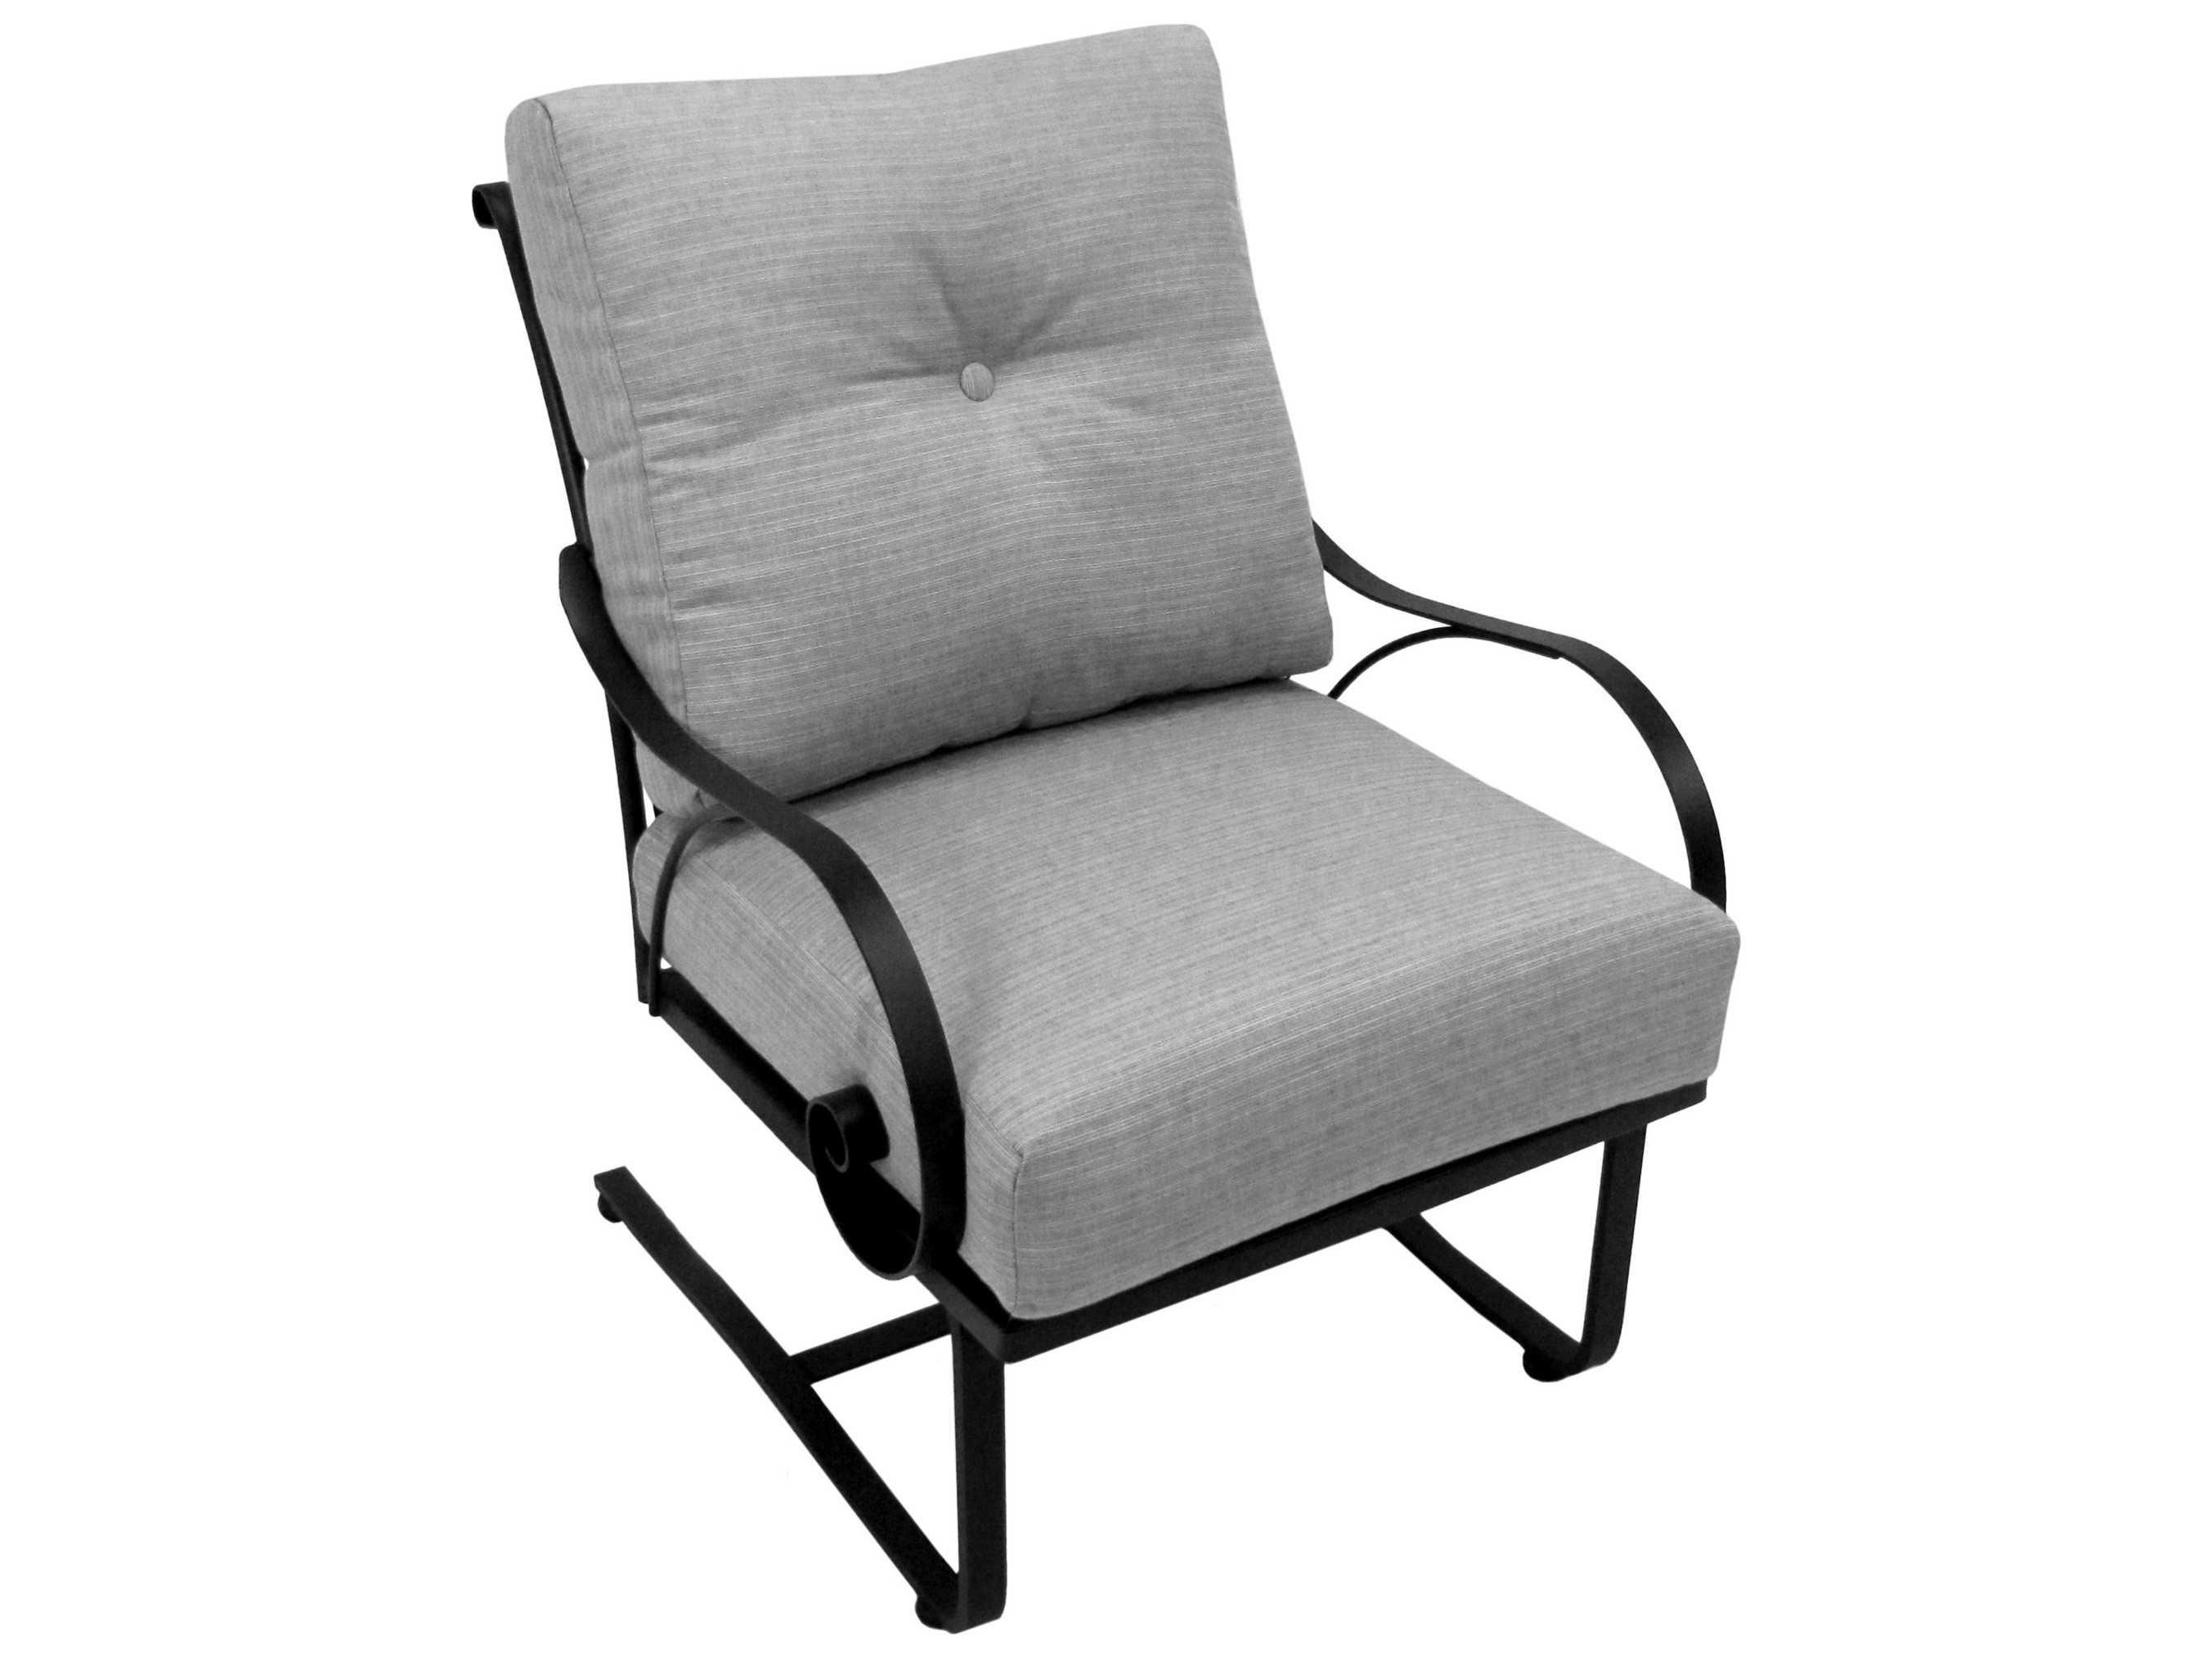 Meadowcraft Monticello Spring Lounge Chair Replacement